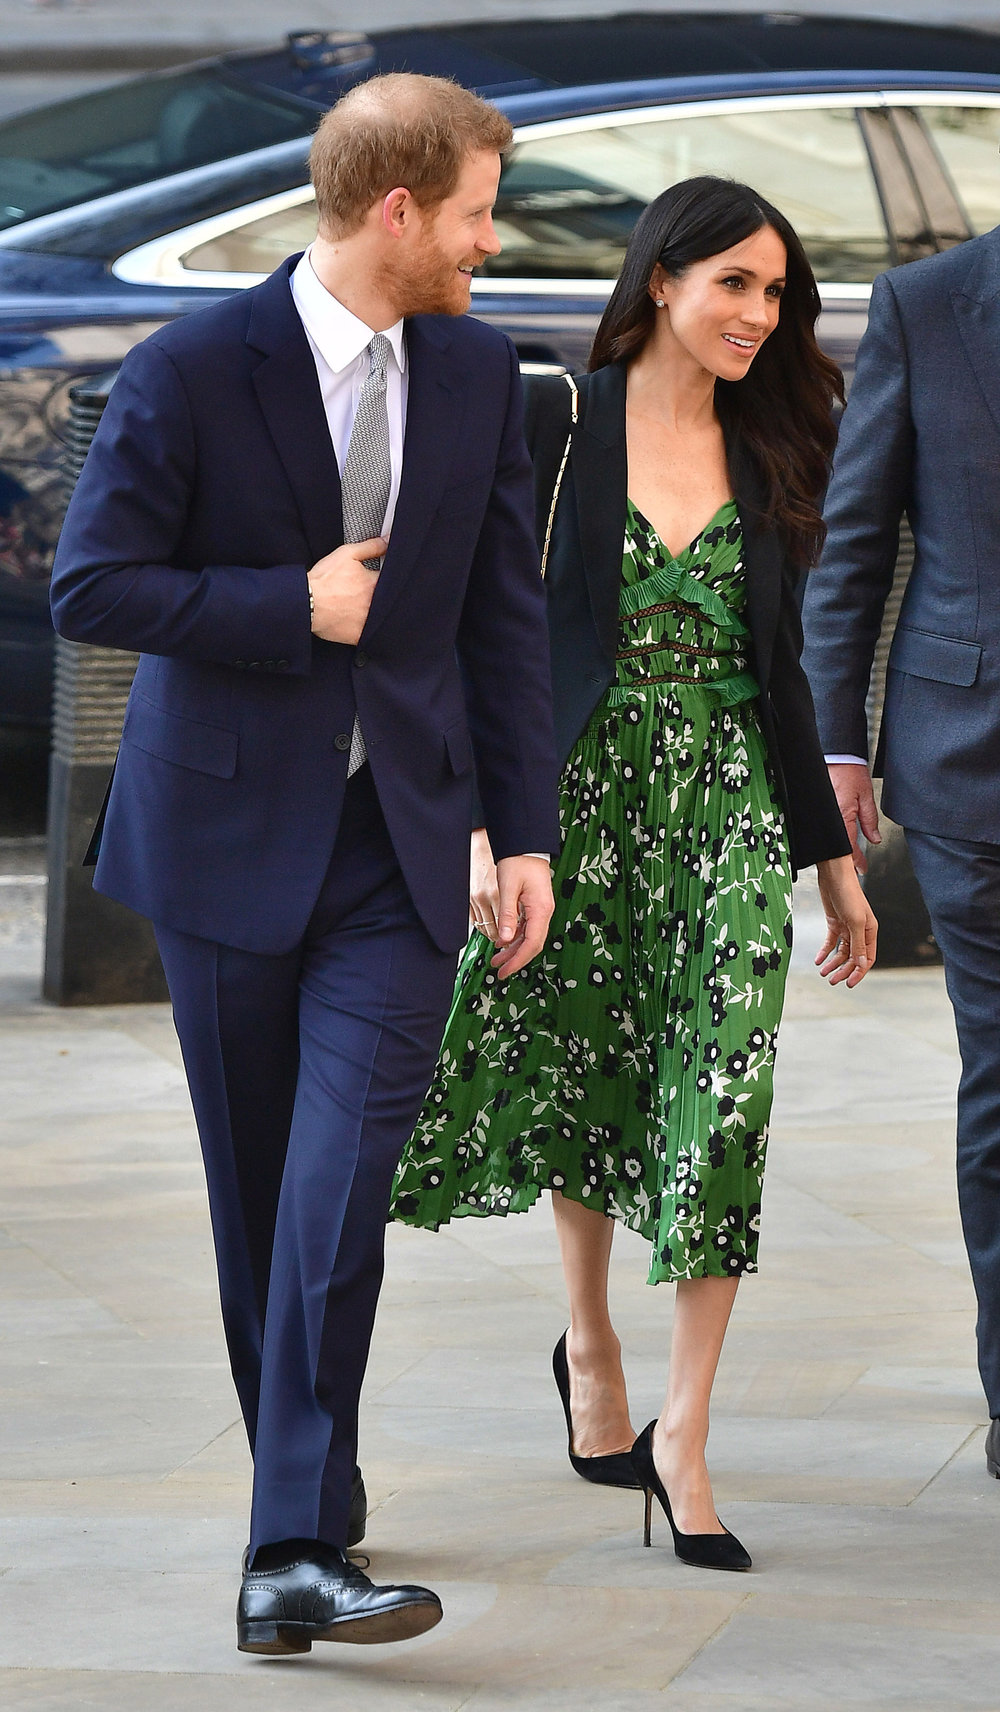 Invictus Games reception - London SOURCE:  http://meghansmirror.com/look-for-less/stylist-saturday-meghan-markles-floral-spring-dress-style/